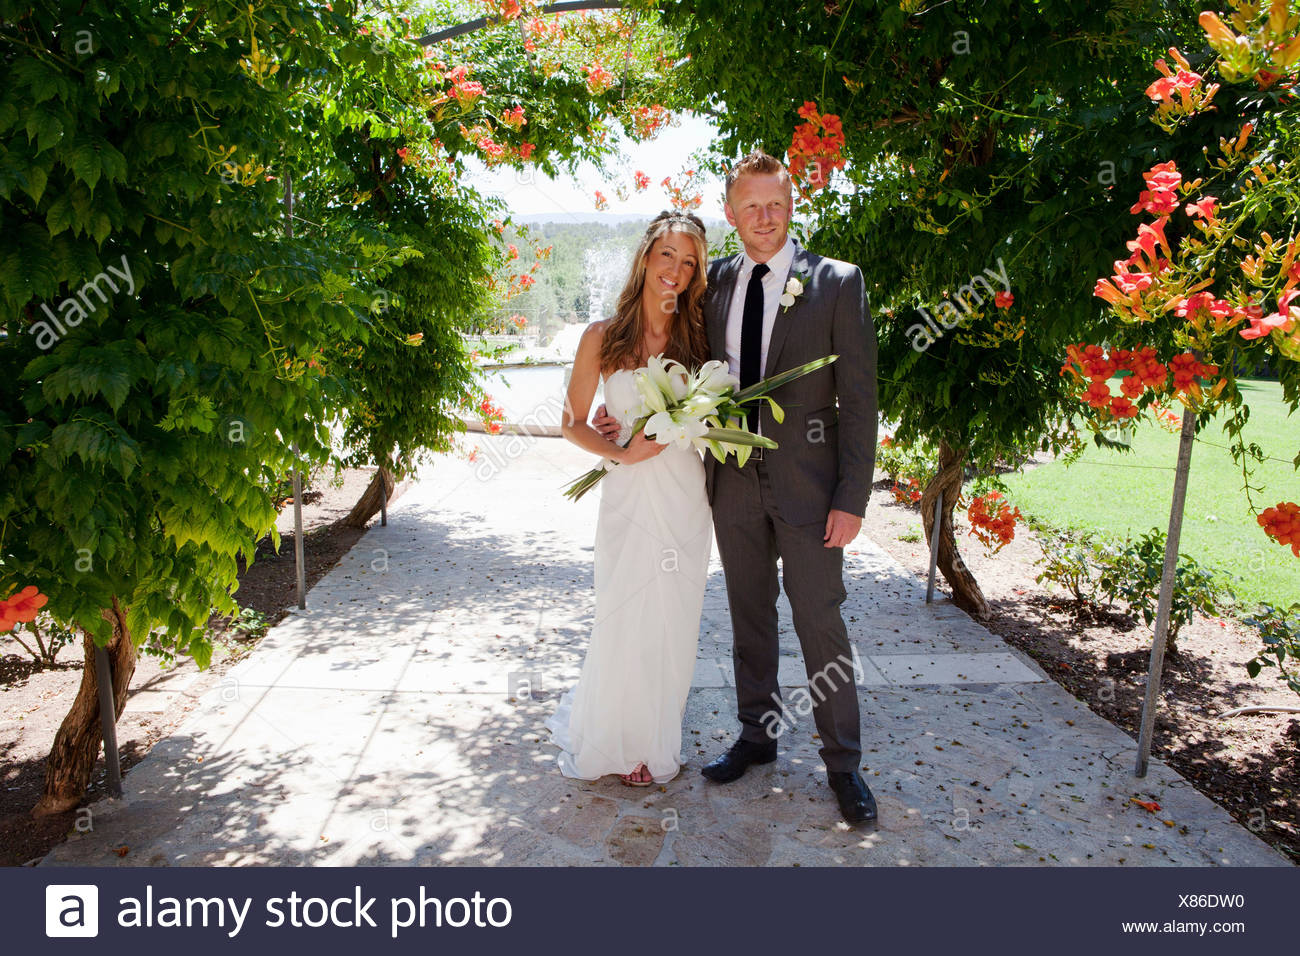 Portrait of mid adult bride and groom on wedding day - Stock Image